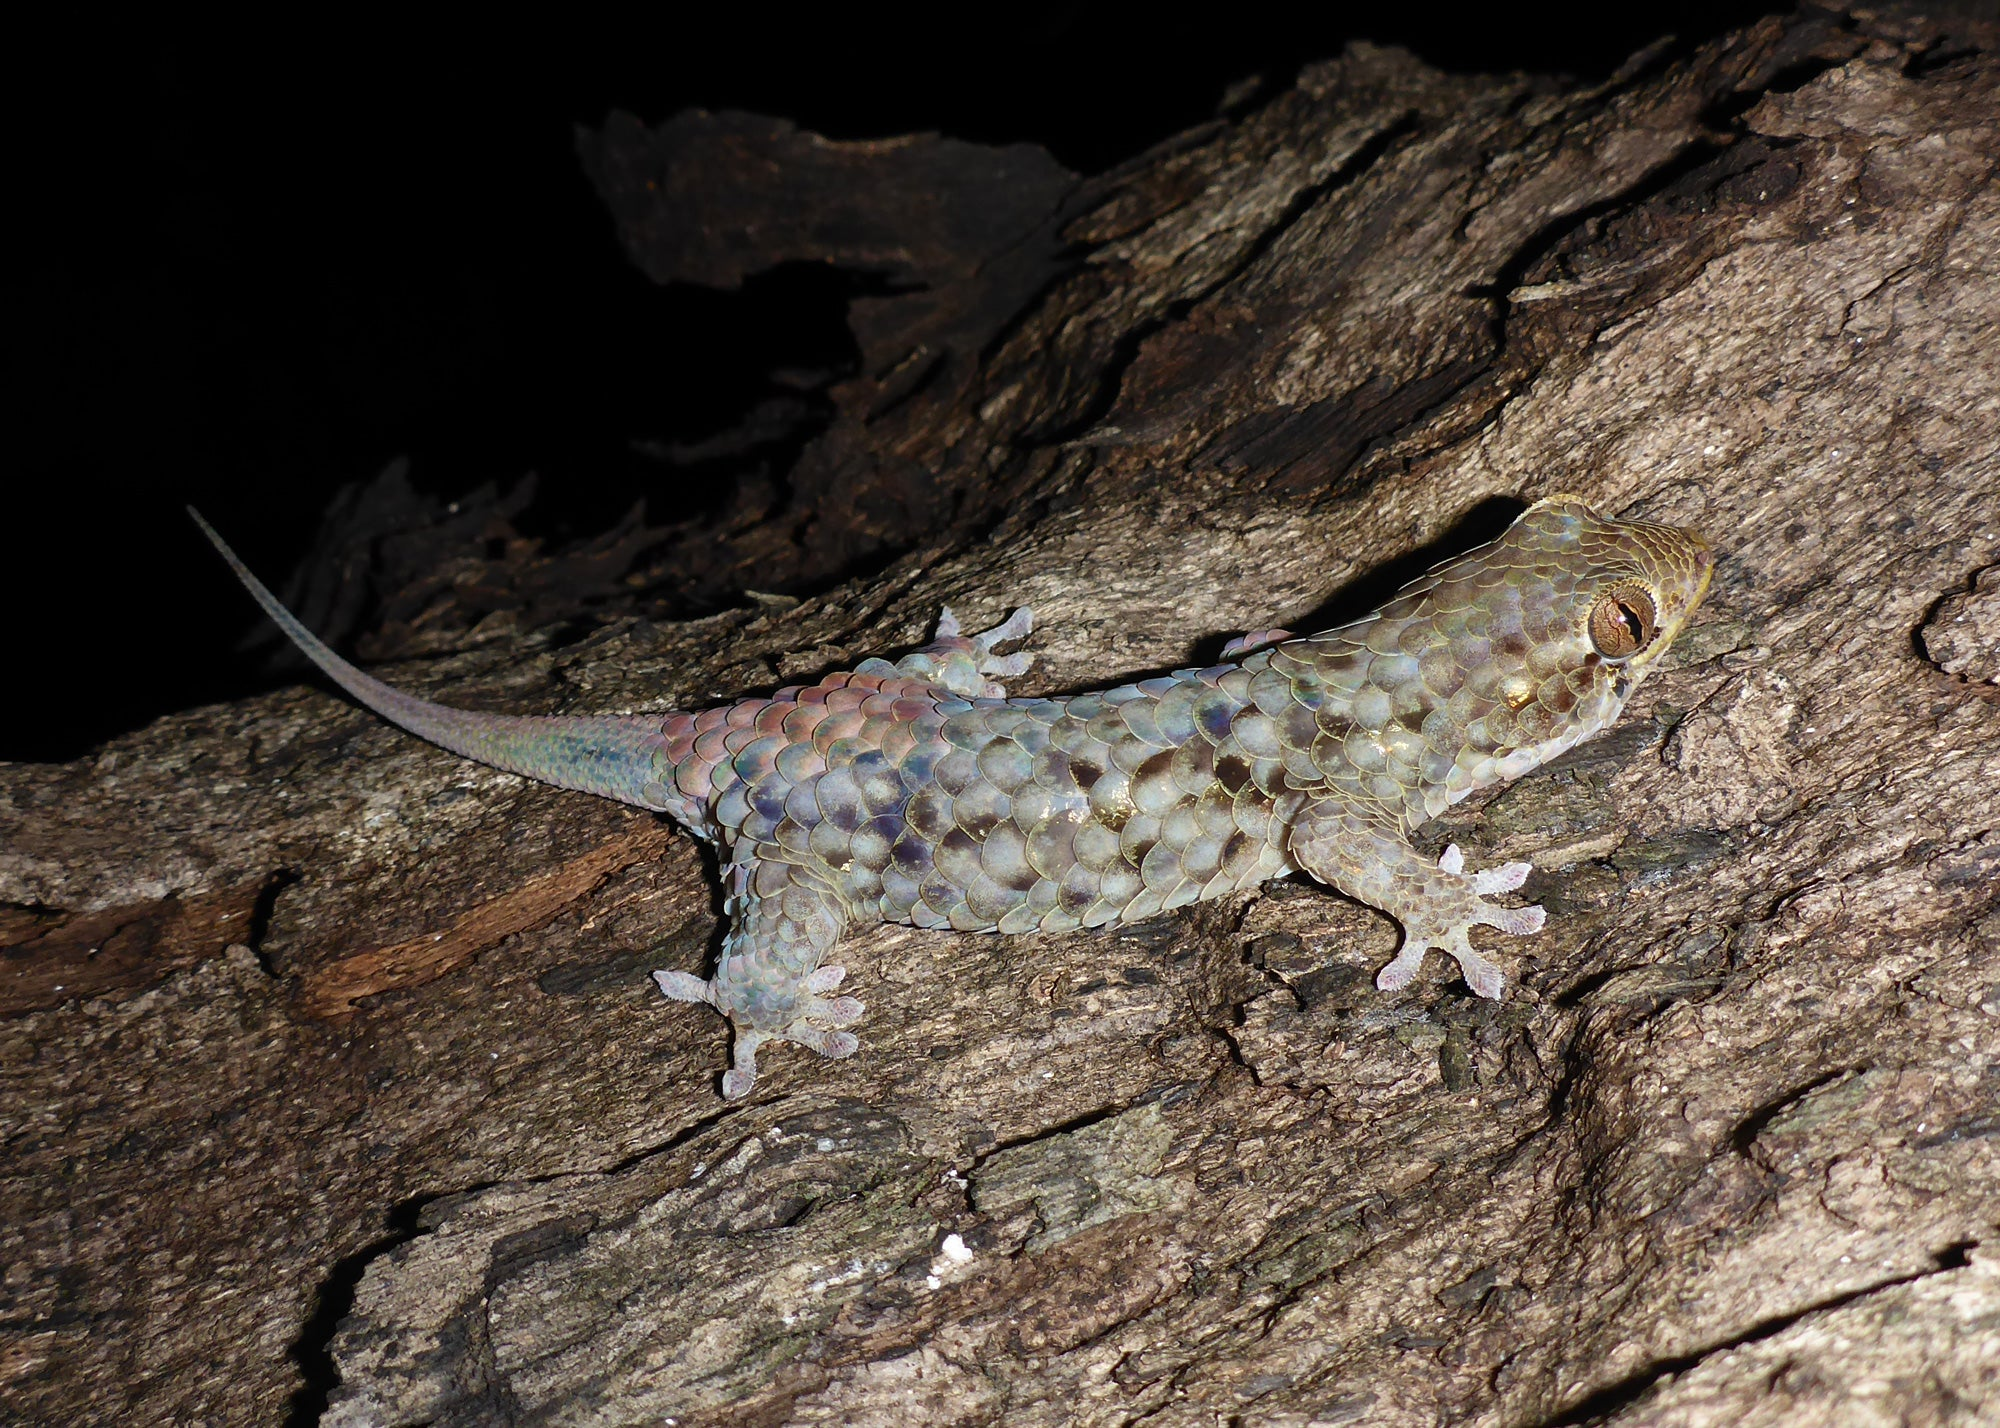 This newly discovered gecko can literally squirm right out of its skin